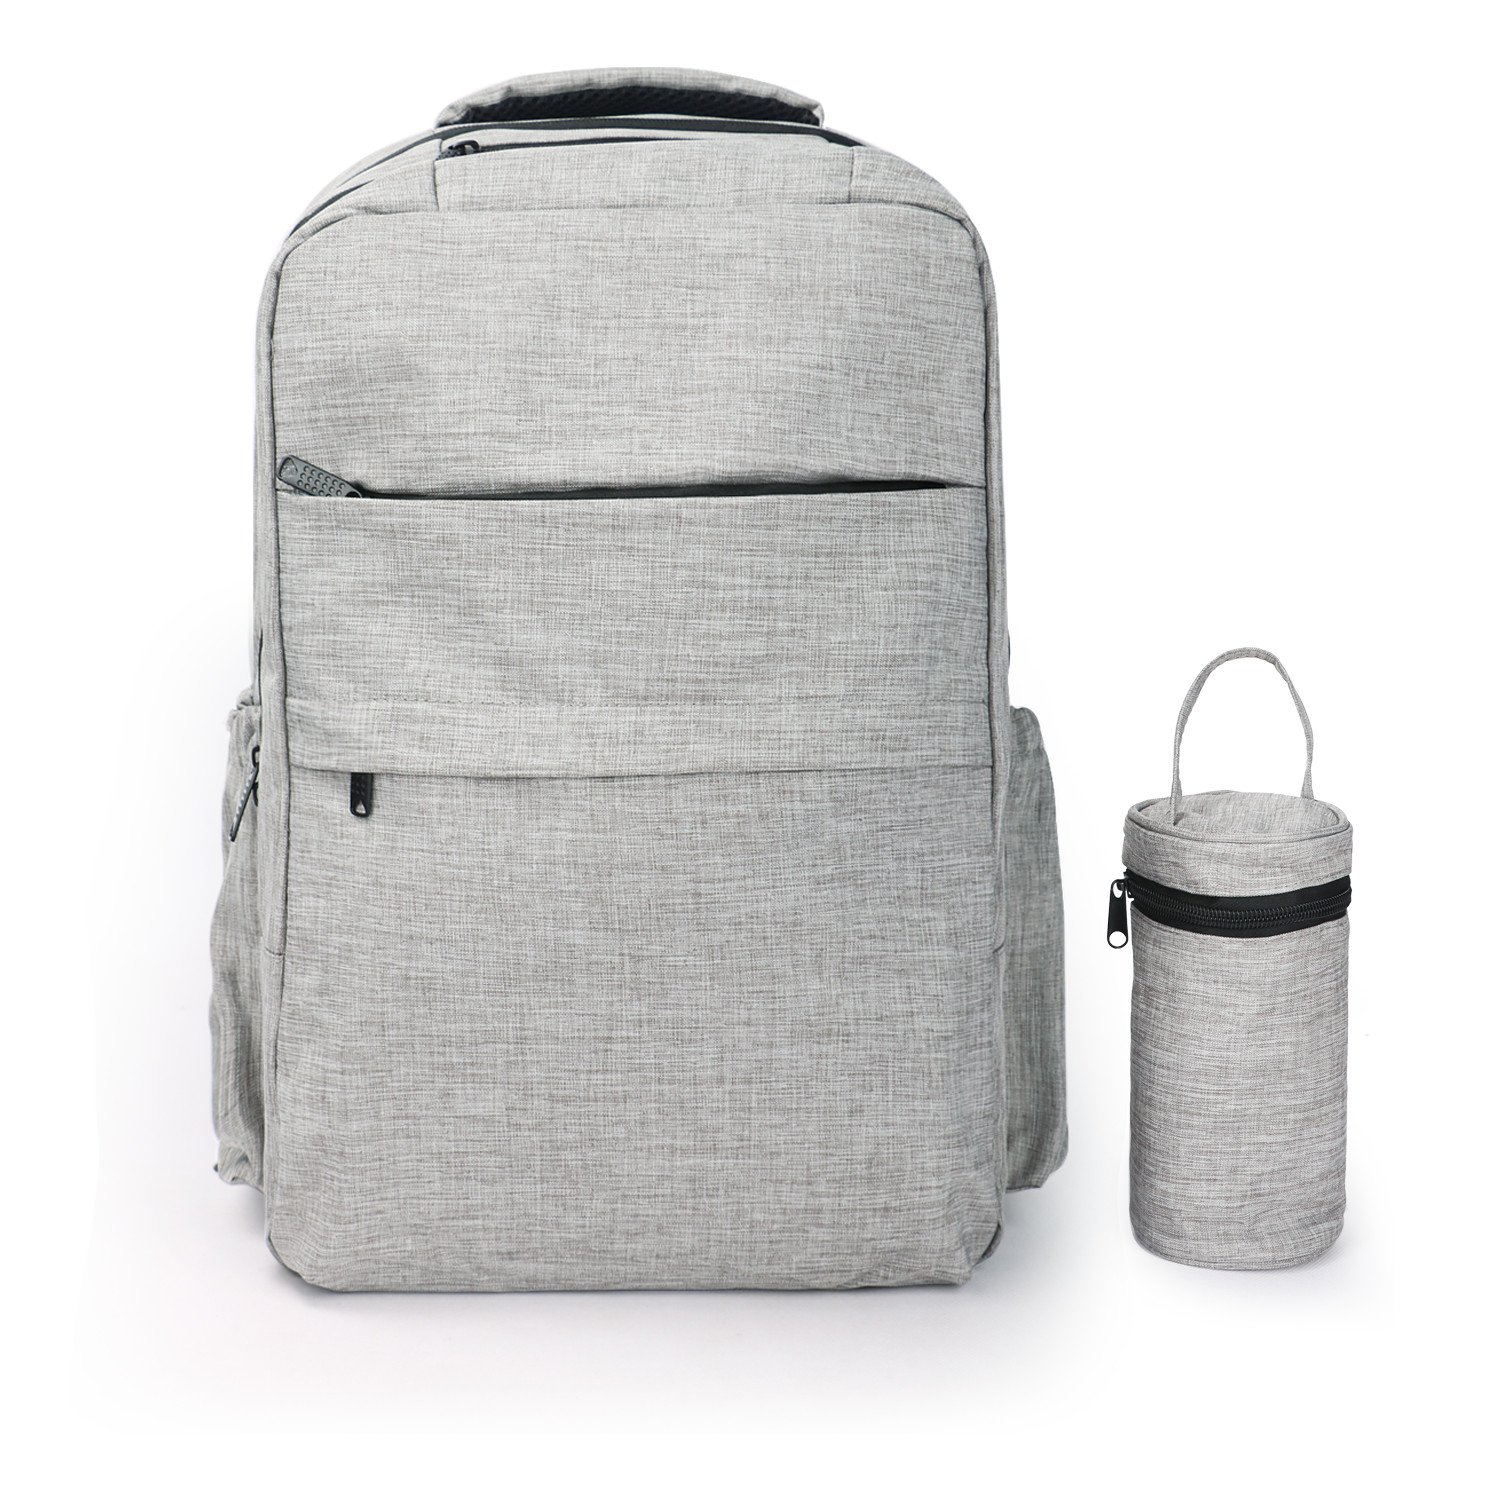 Amazon.com : Fitmyfavo Baby Diaper Bag Backpack Smart Organizer for Mom & Dads - Waterproof Nappy Bag with Changing Pad (Grey w/ bottle case) : Baby